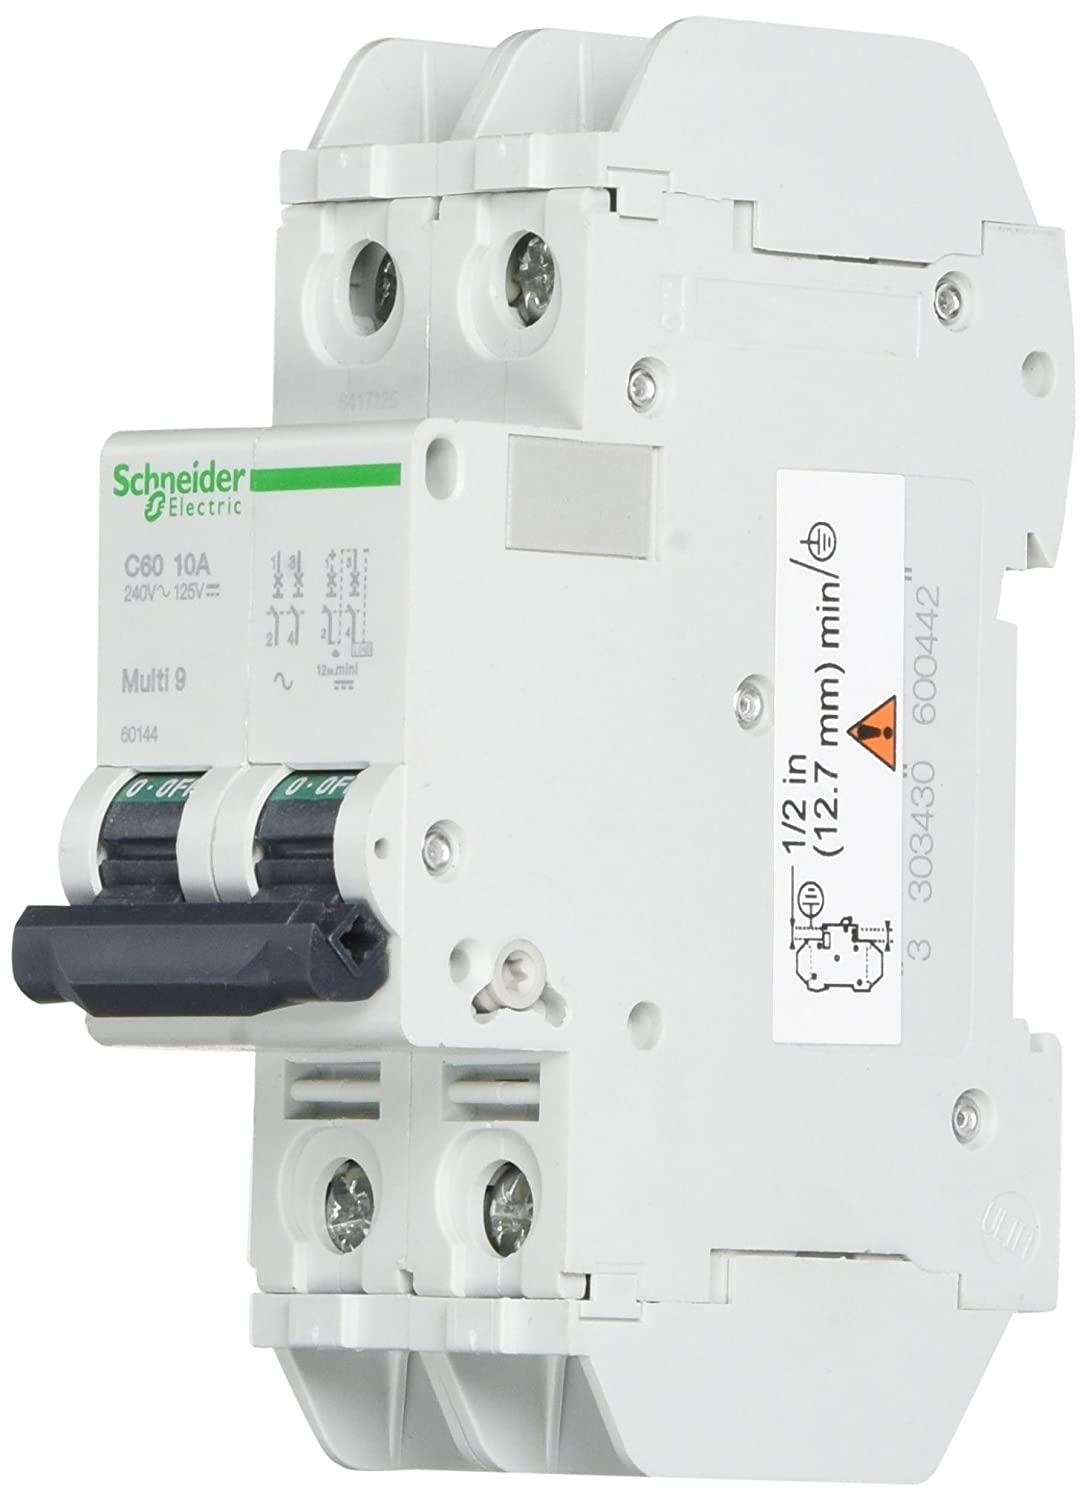 Schneider Electric 60144 magneto-thermic Switch C60 240 V 10 A